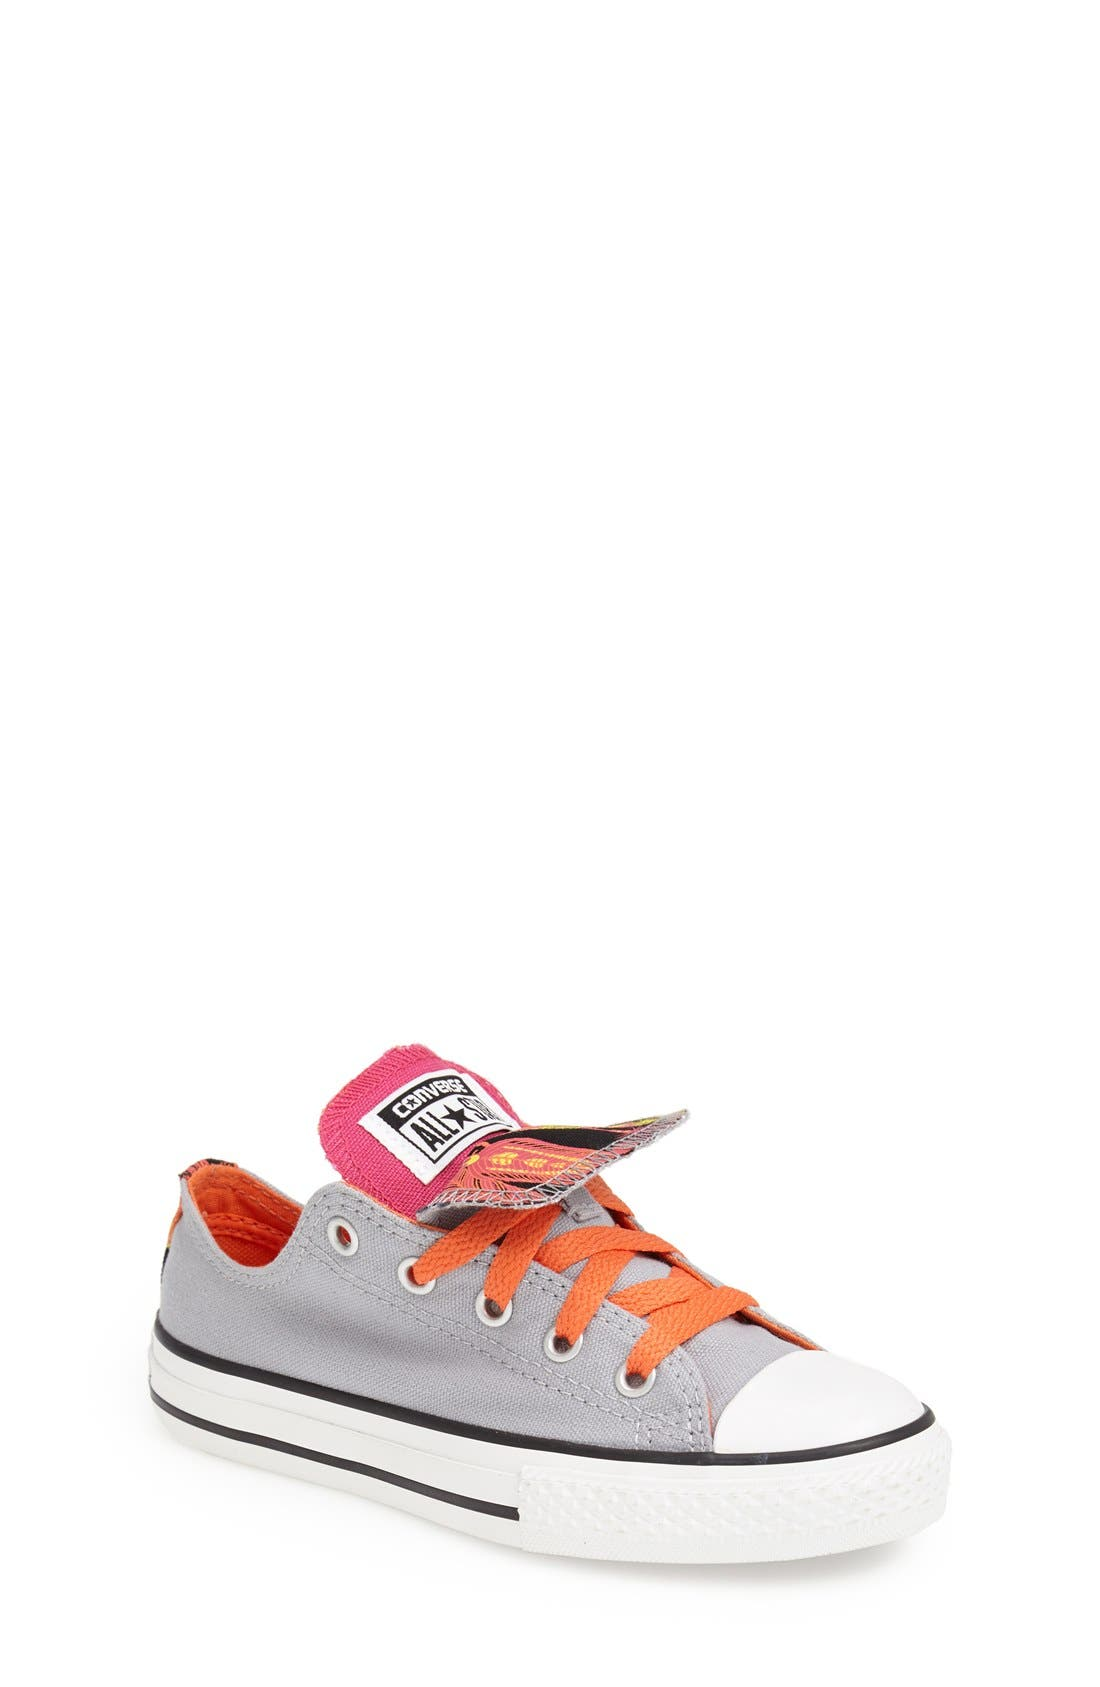 Main Image - Converse Chuck Taylor® Double Tongue Sneaker (Baby, Walker, Toddler, Little Kid & Big Kid)